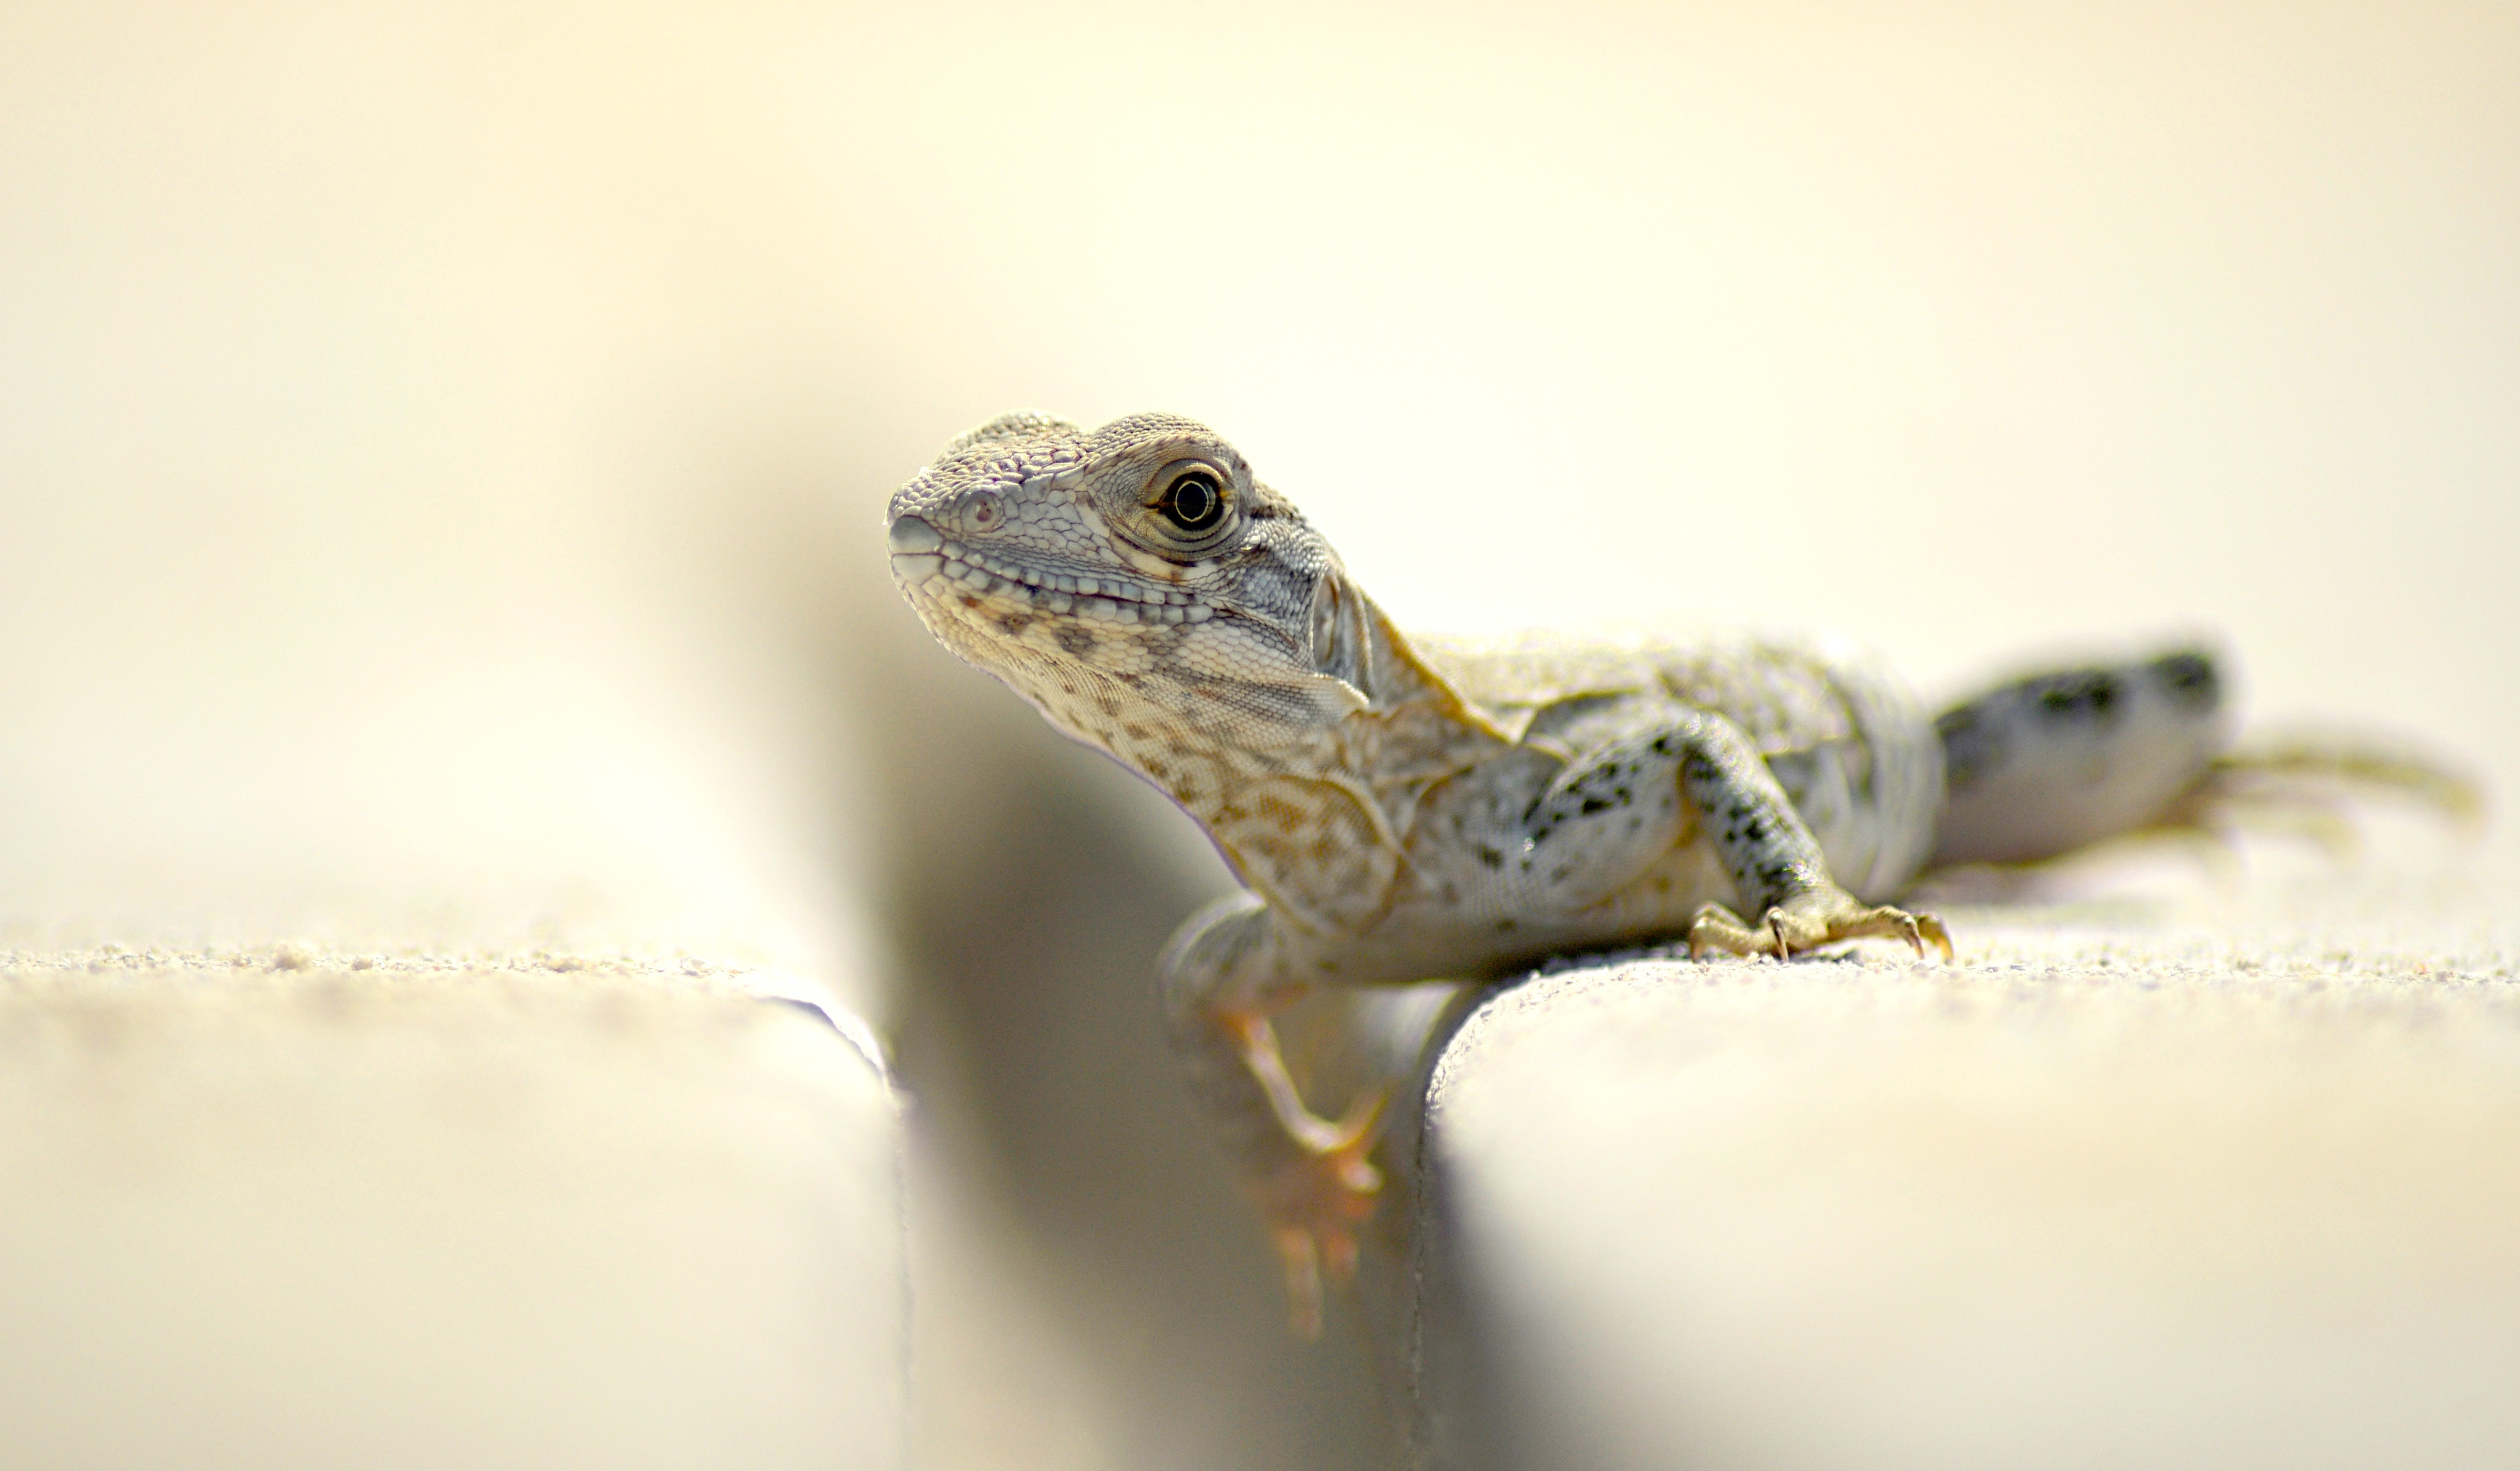 Reptile looking at camera beside a crevice